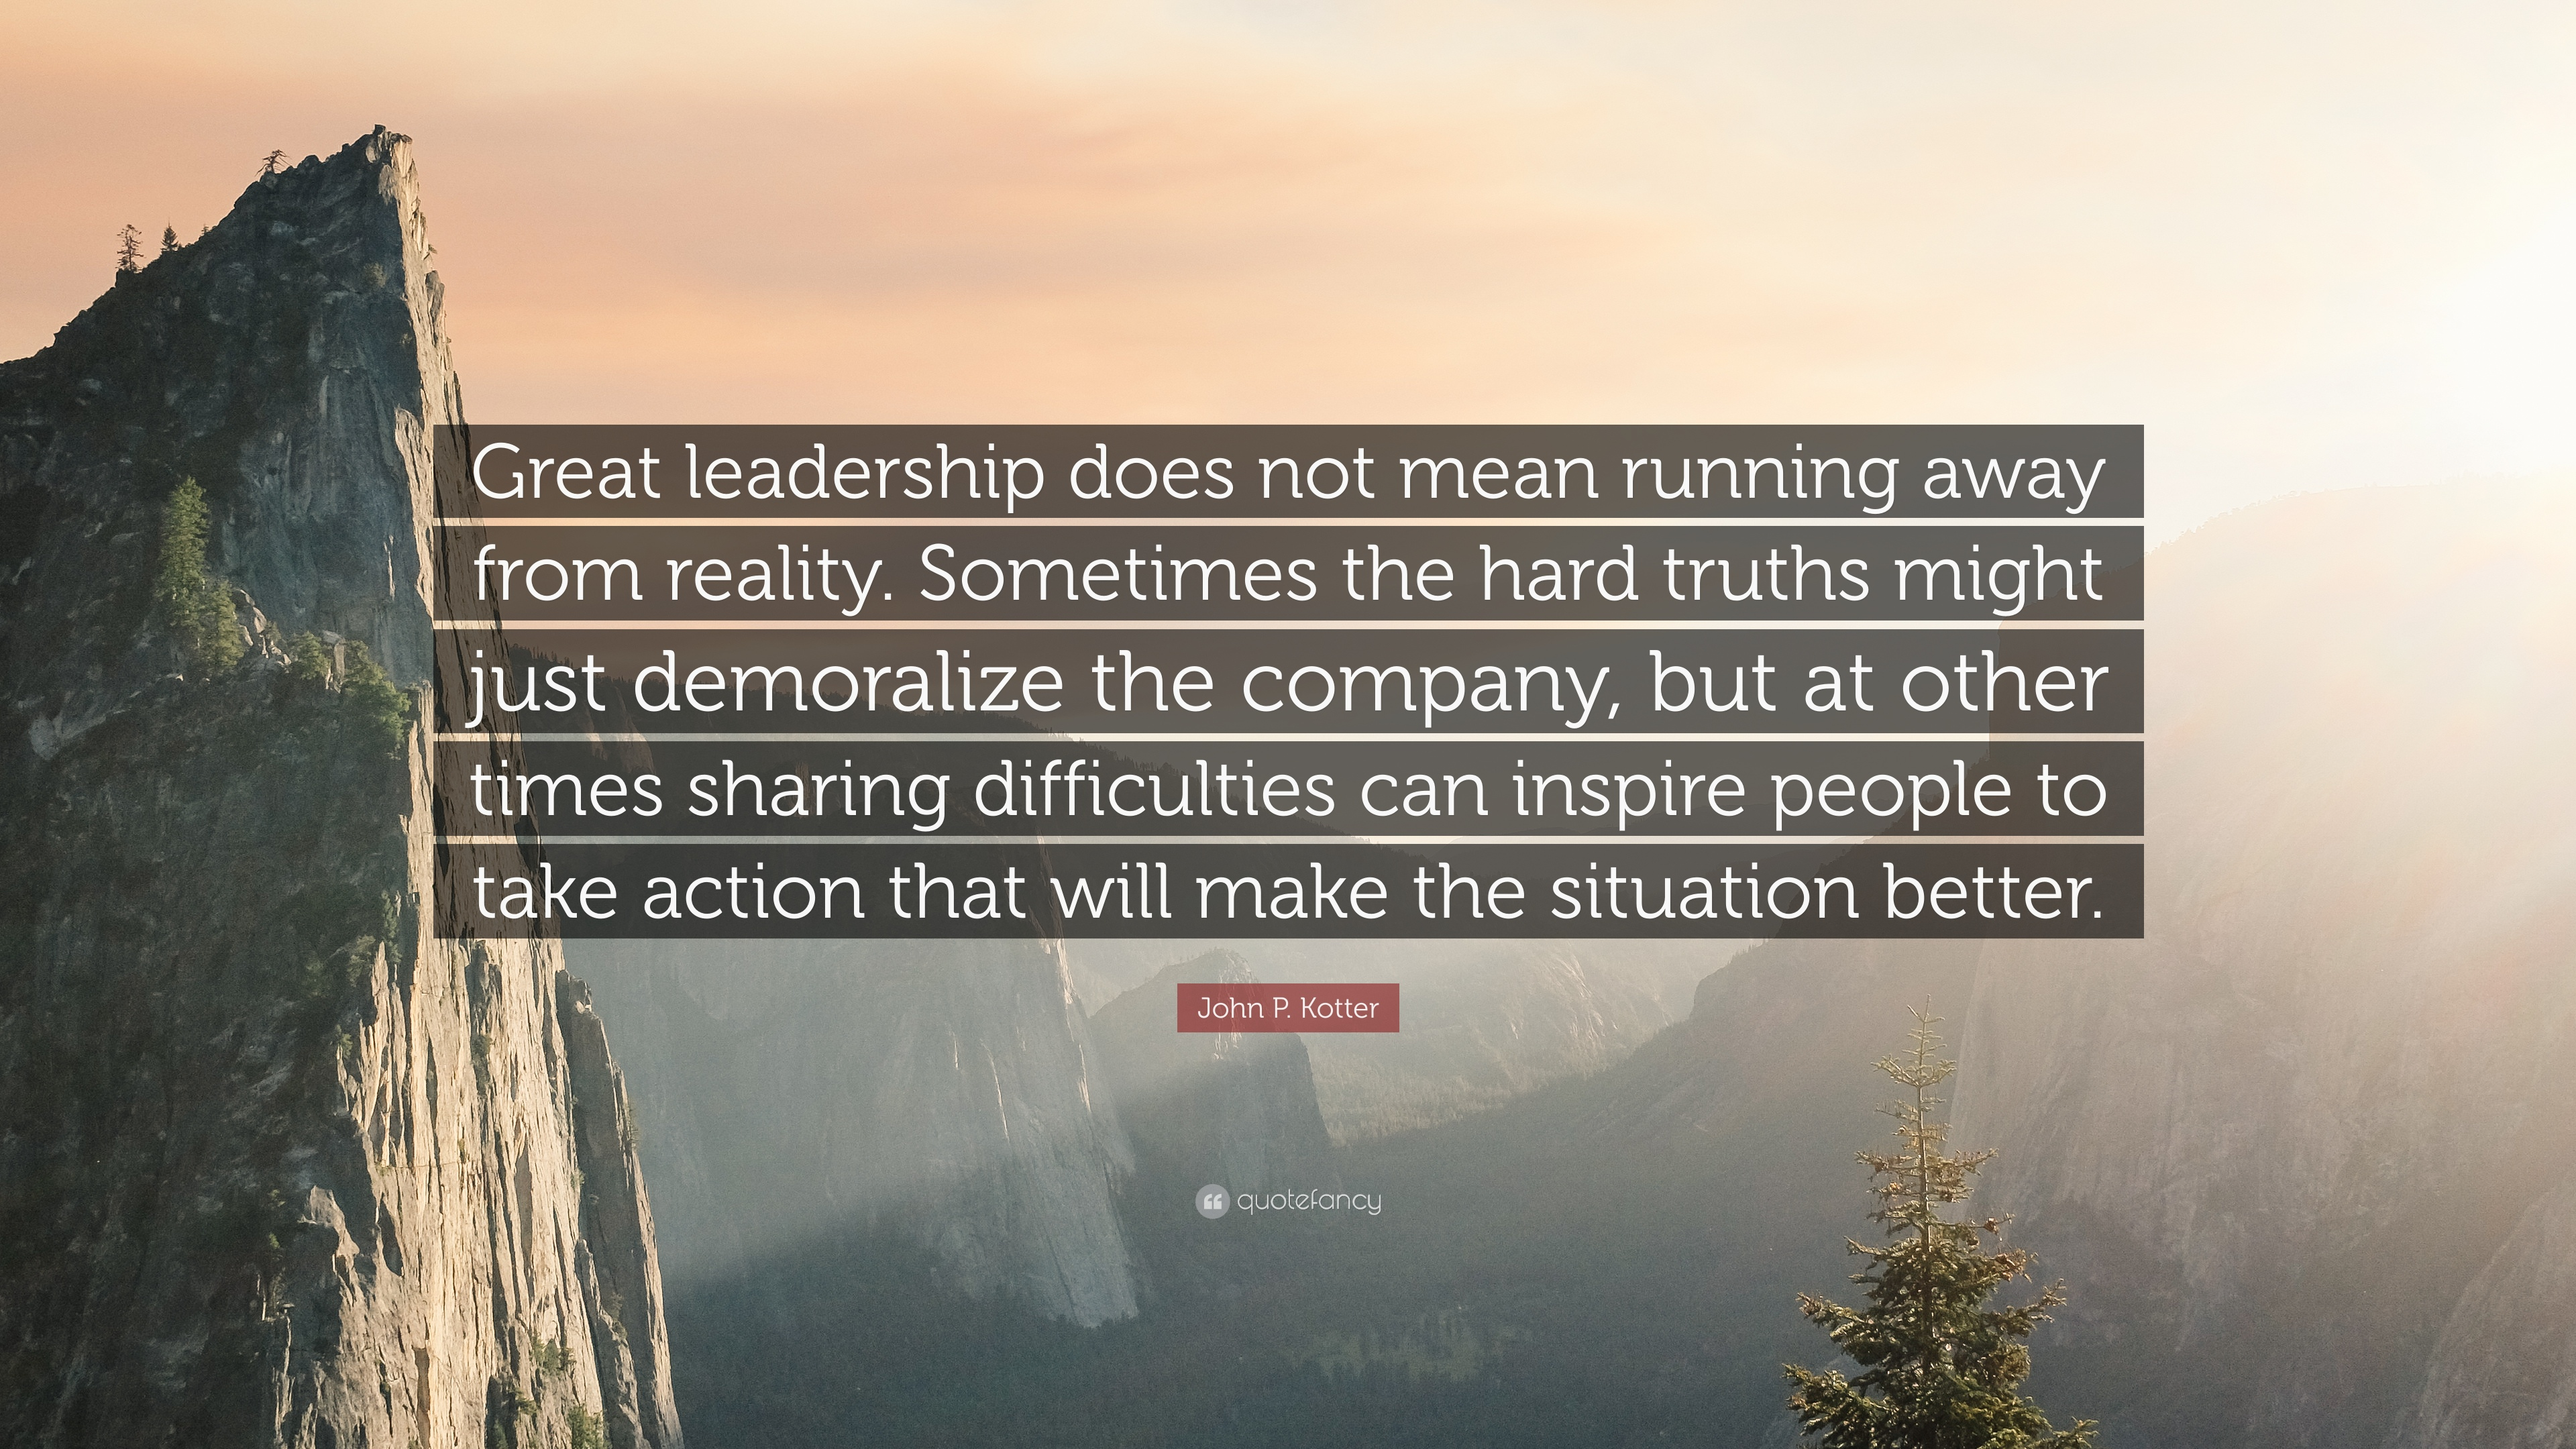 John P Kotter Quote Great Leadership Does Not Mean Running Away